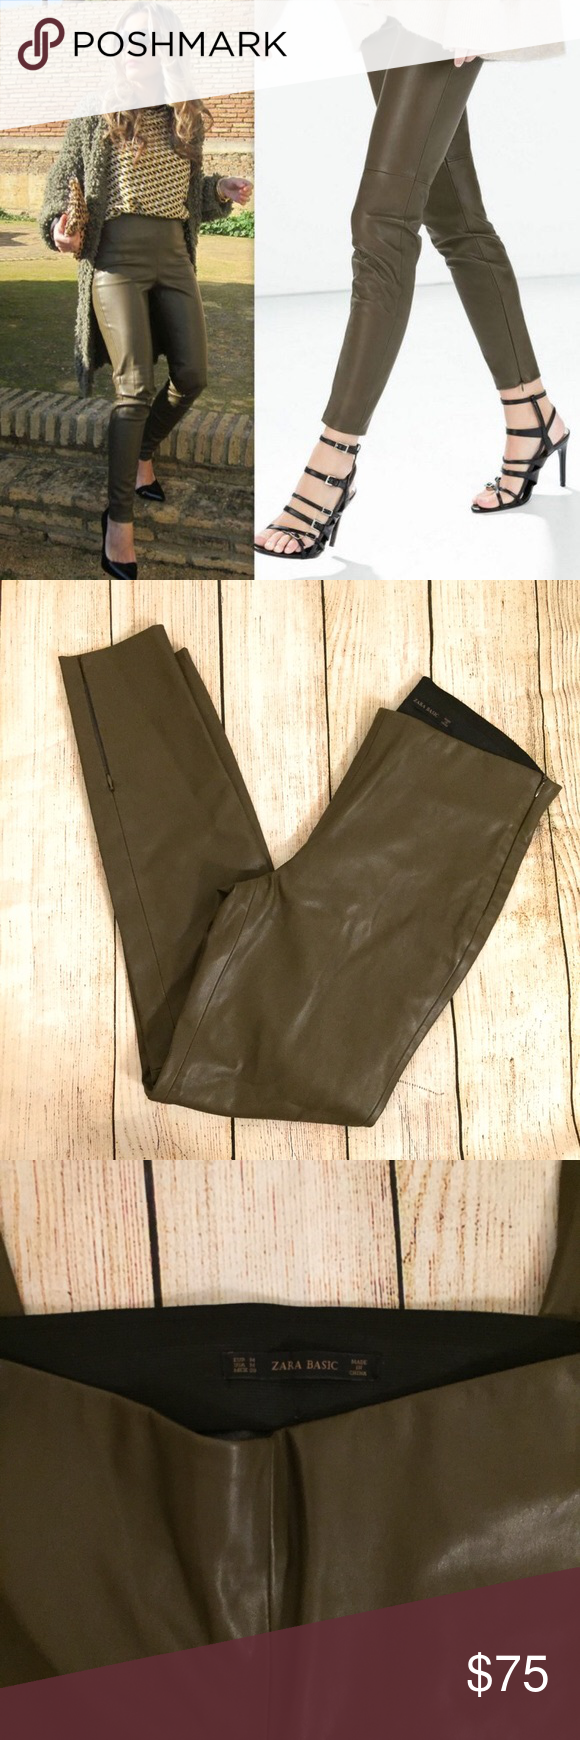 69c11b475326b ZARA OLIVE GREEN FAUX LEATHER TROUSERS LEGGINGS NEW NO TAGS Zara Pants  Trousers